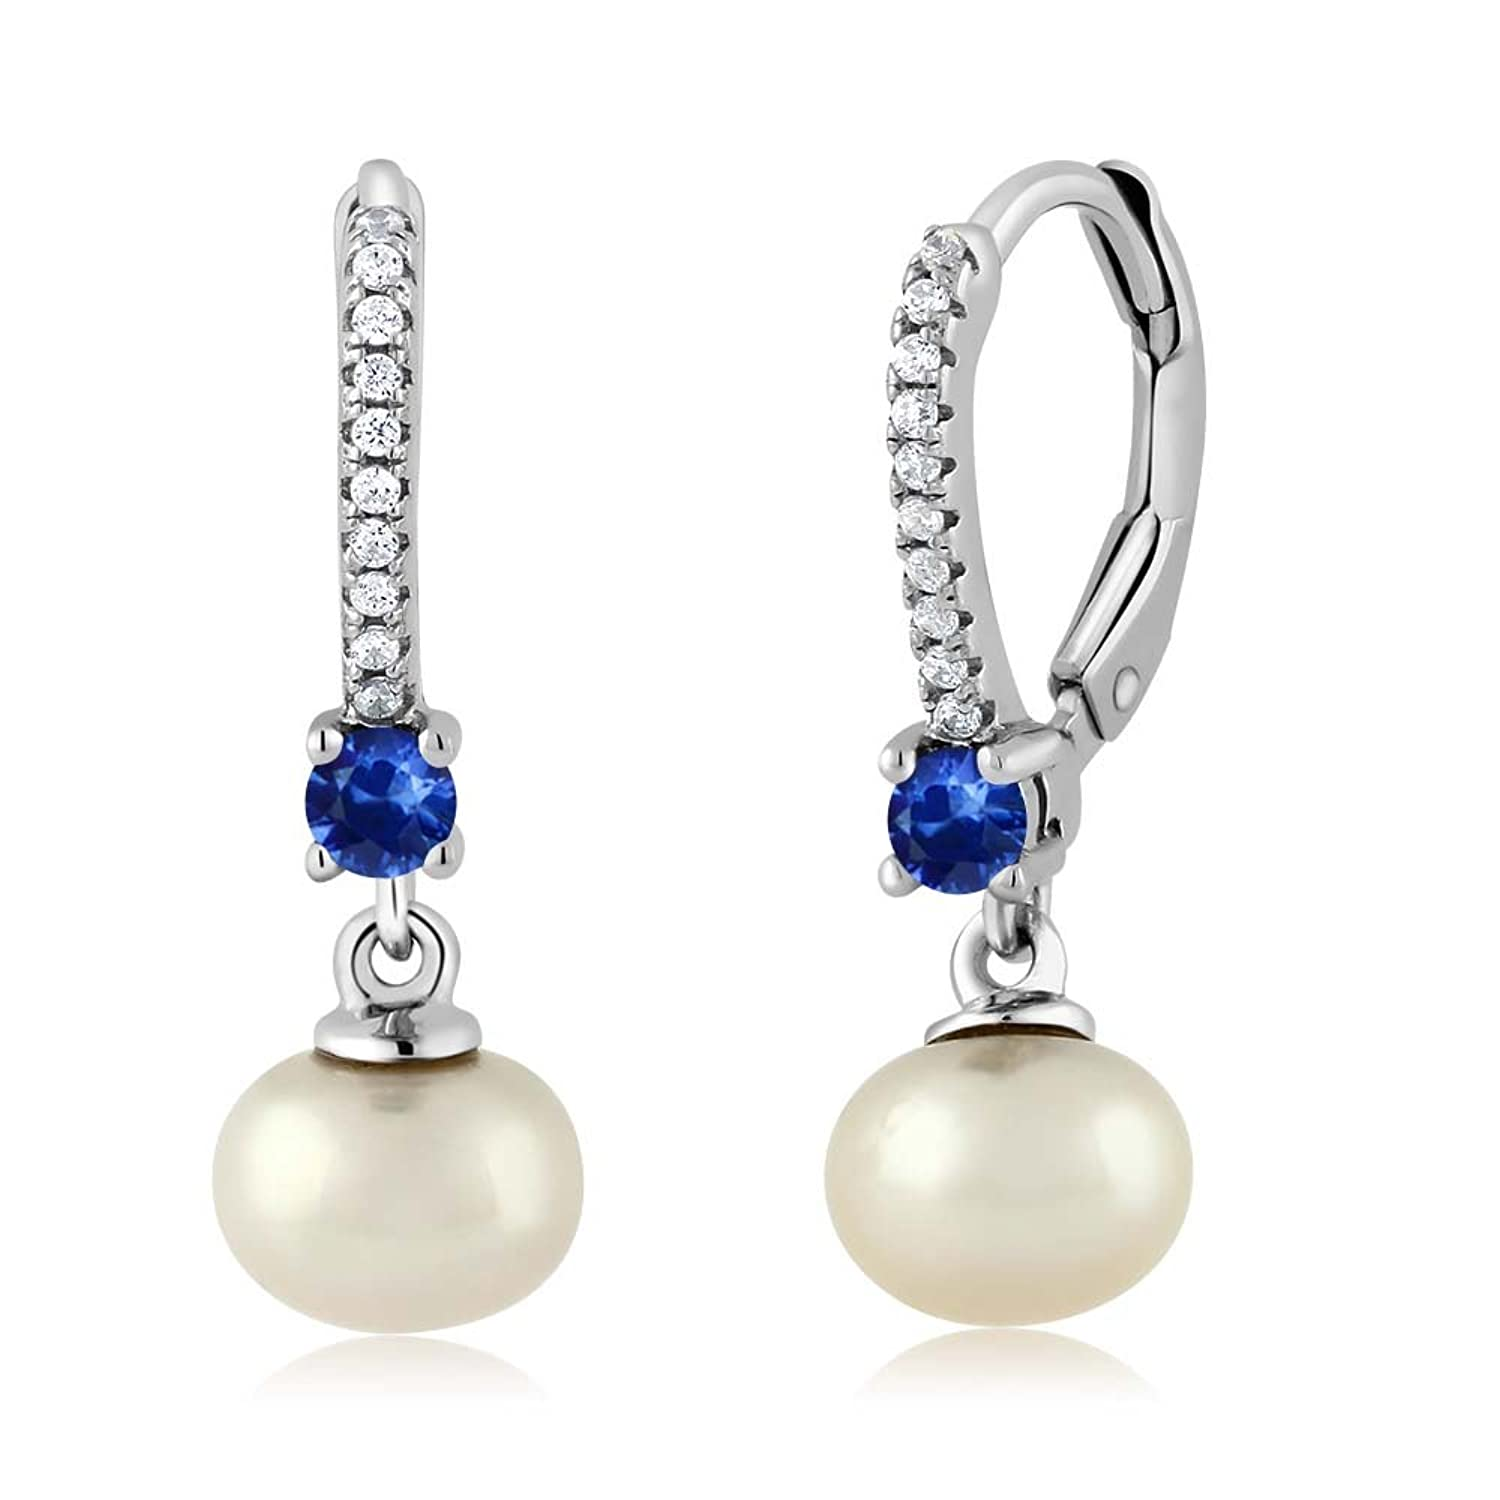 0.50 Ct Round Blue Sapphire Cultured Freshwater Pearl Sterling Silver Earrings